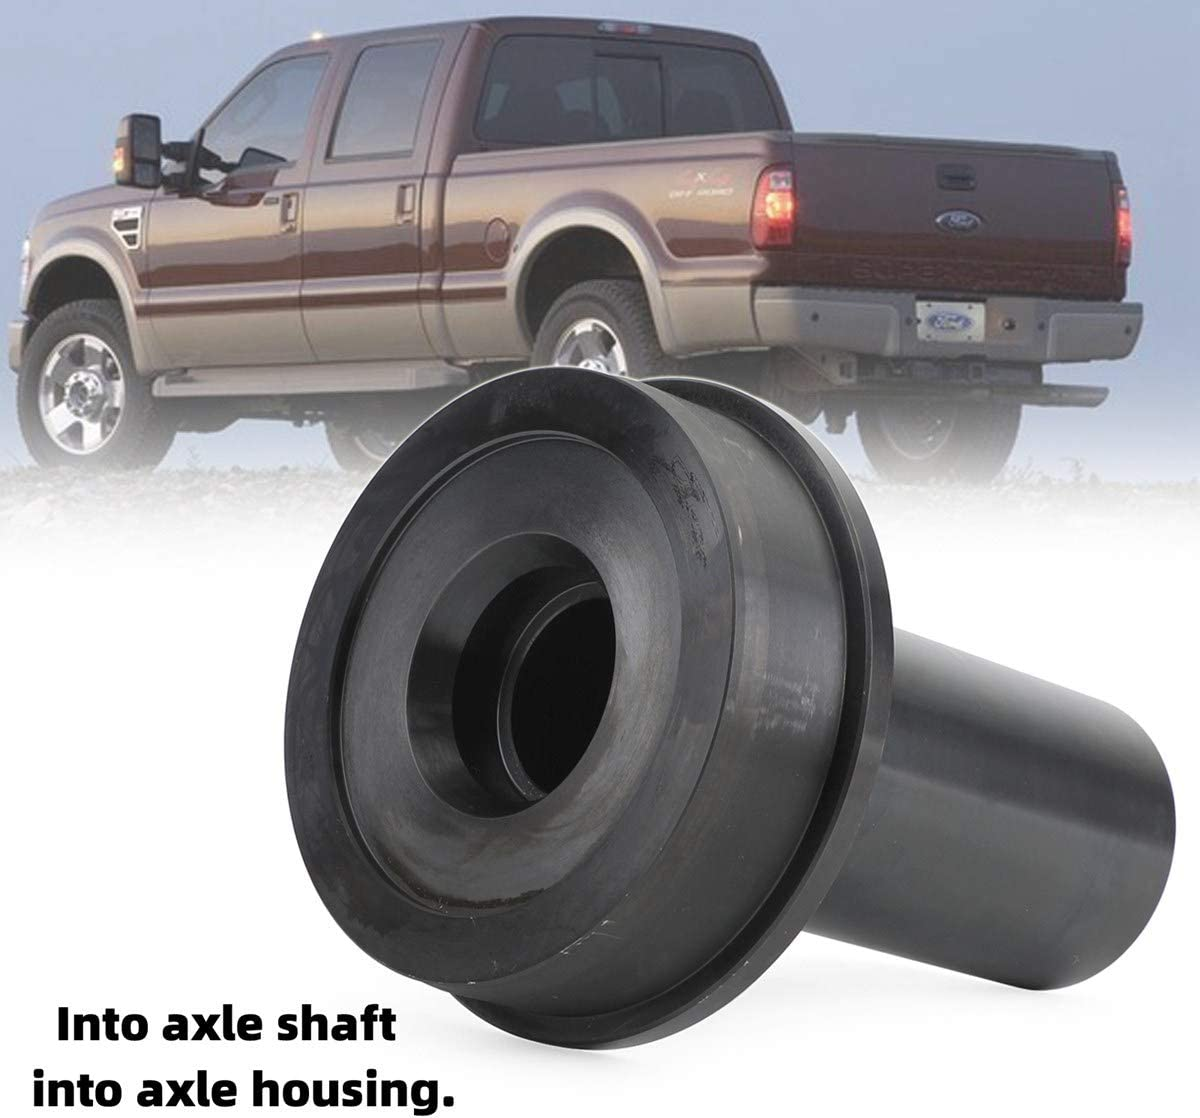 Bruce Shark Complete Free Shipping OTC 6697 Axle Shaft Installer Fit F for Over item handling Seal Tools